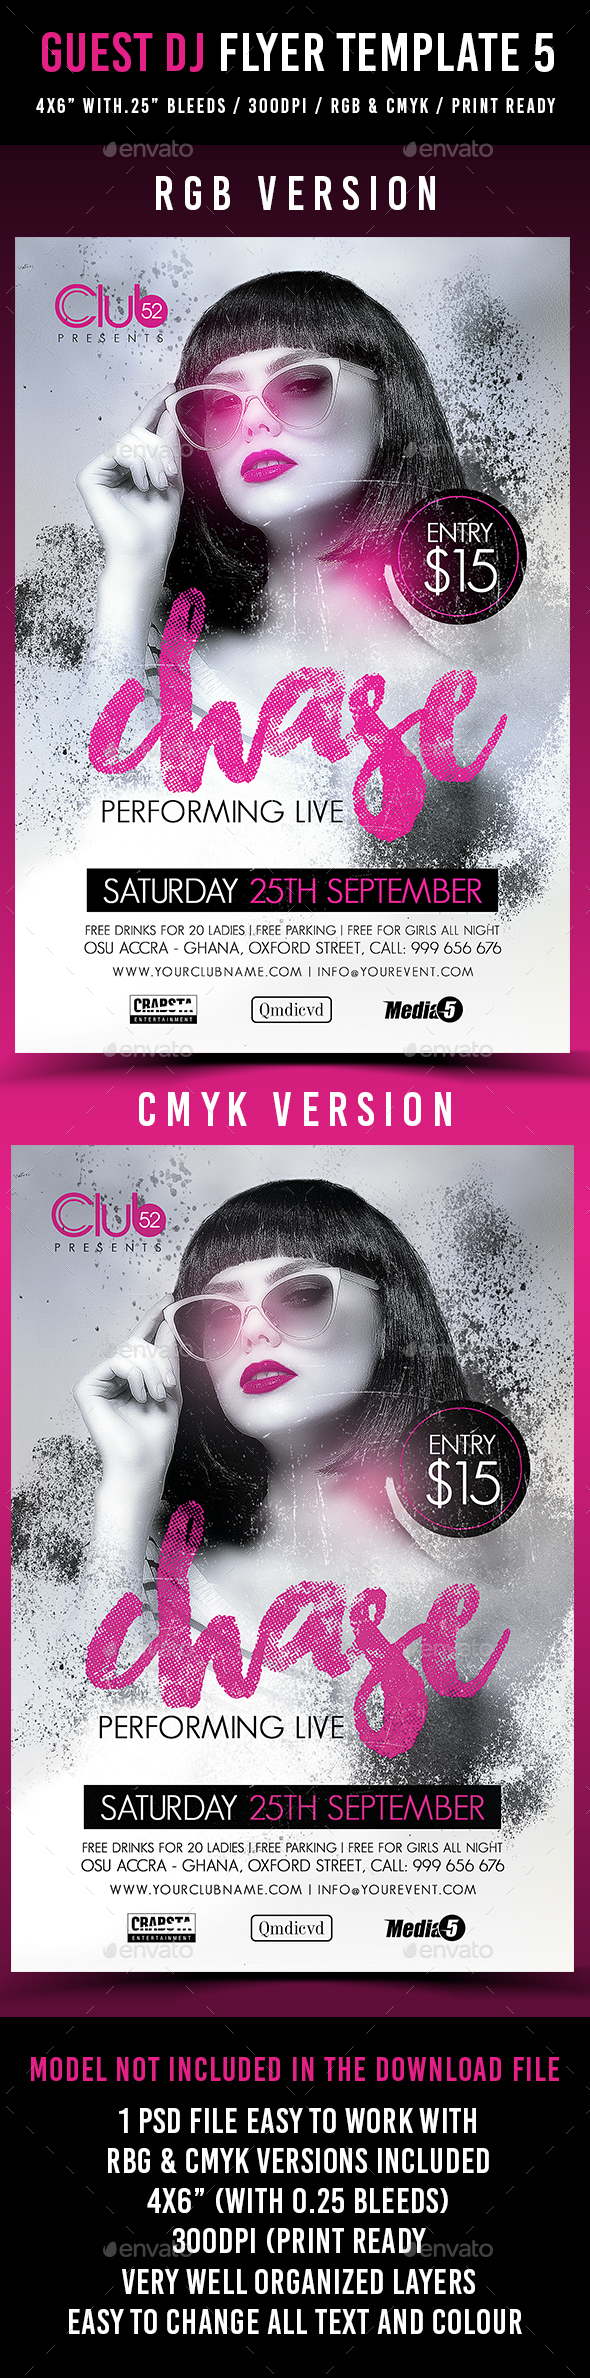 Guest Dj Flyer Template 5  - Clubs & Parties Events